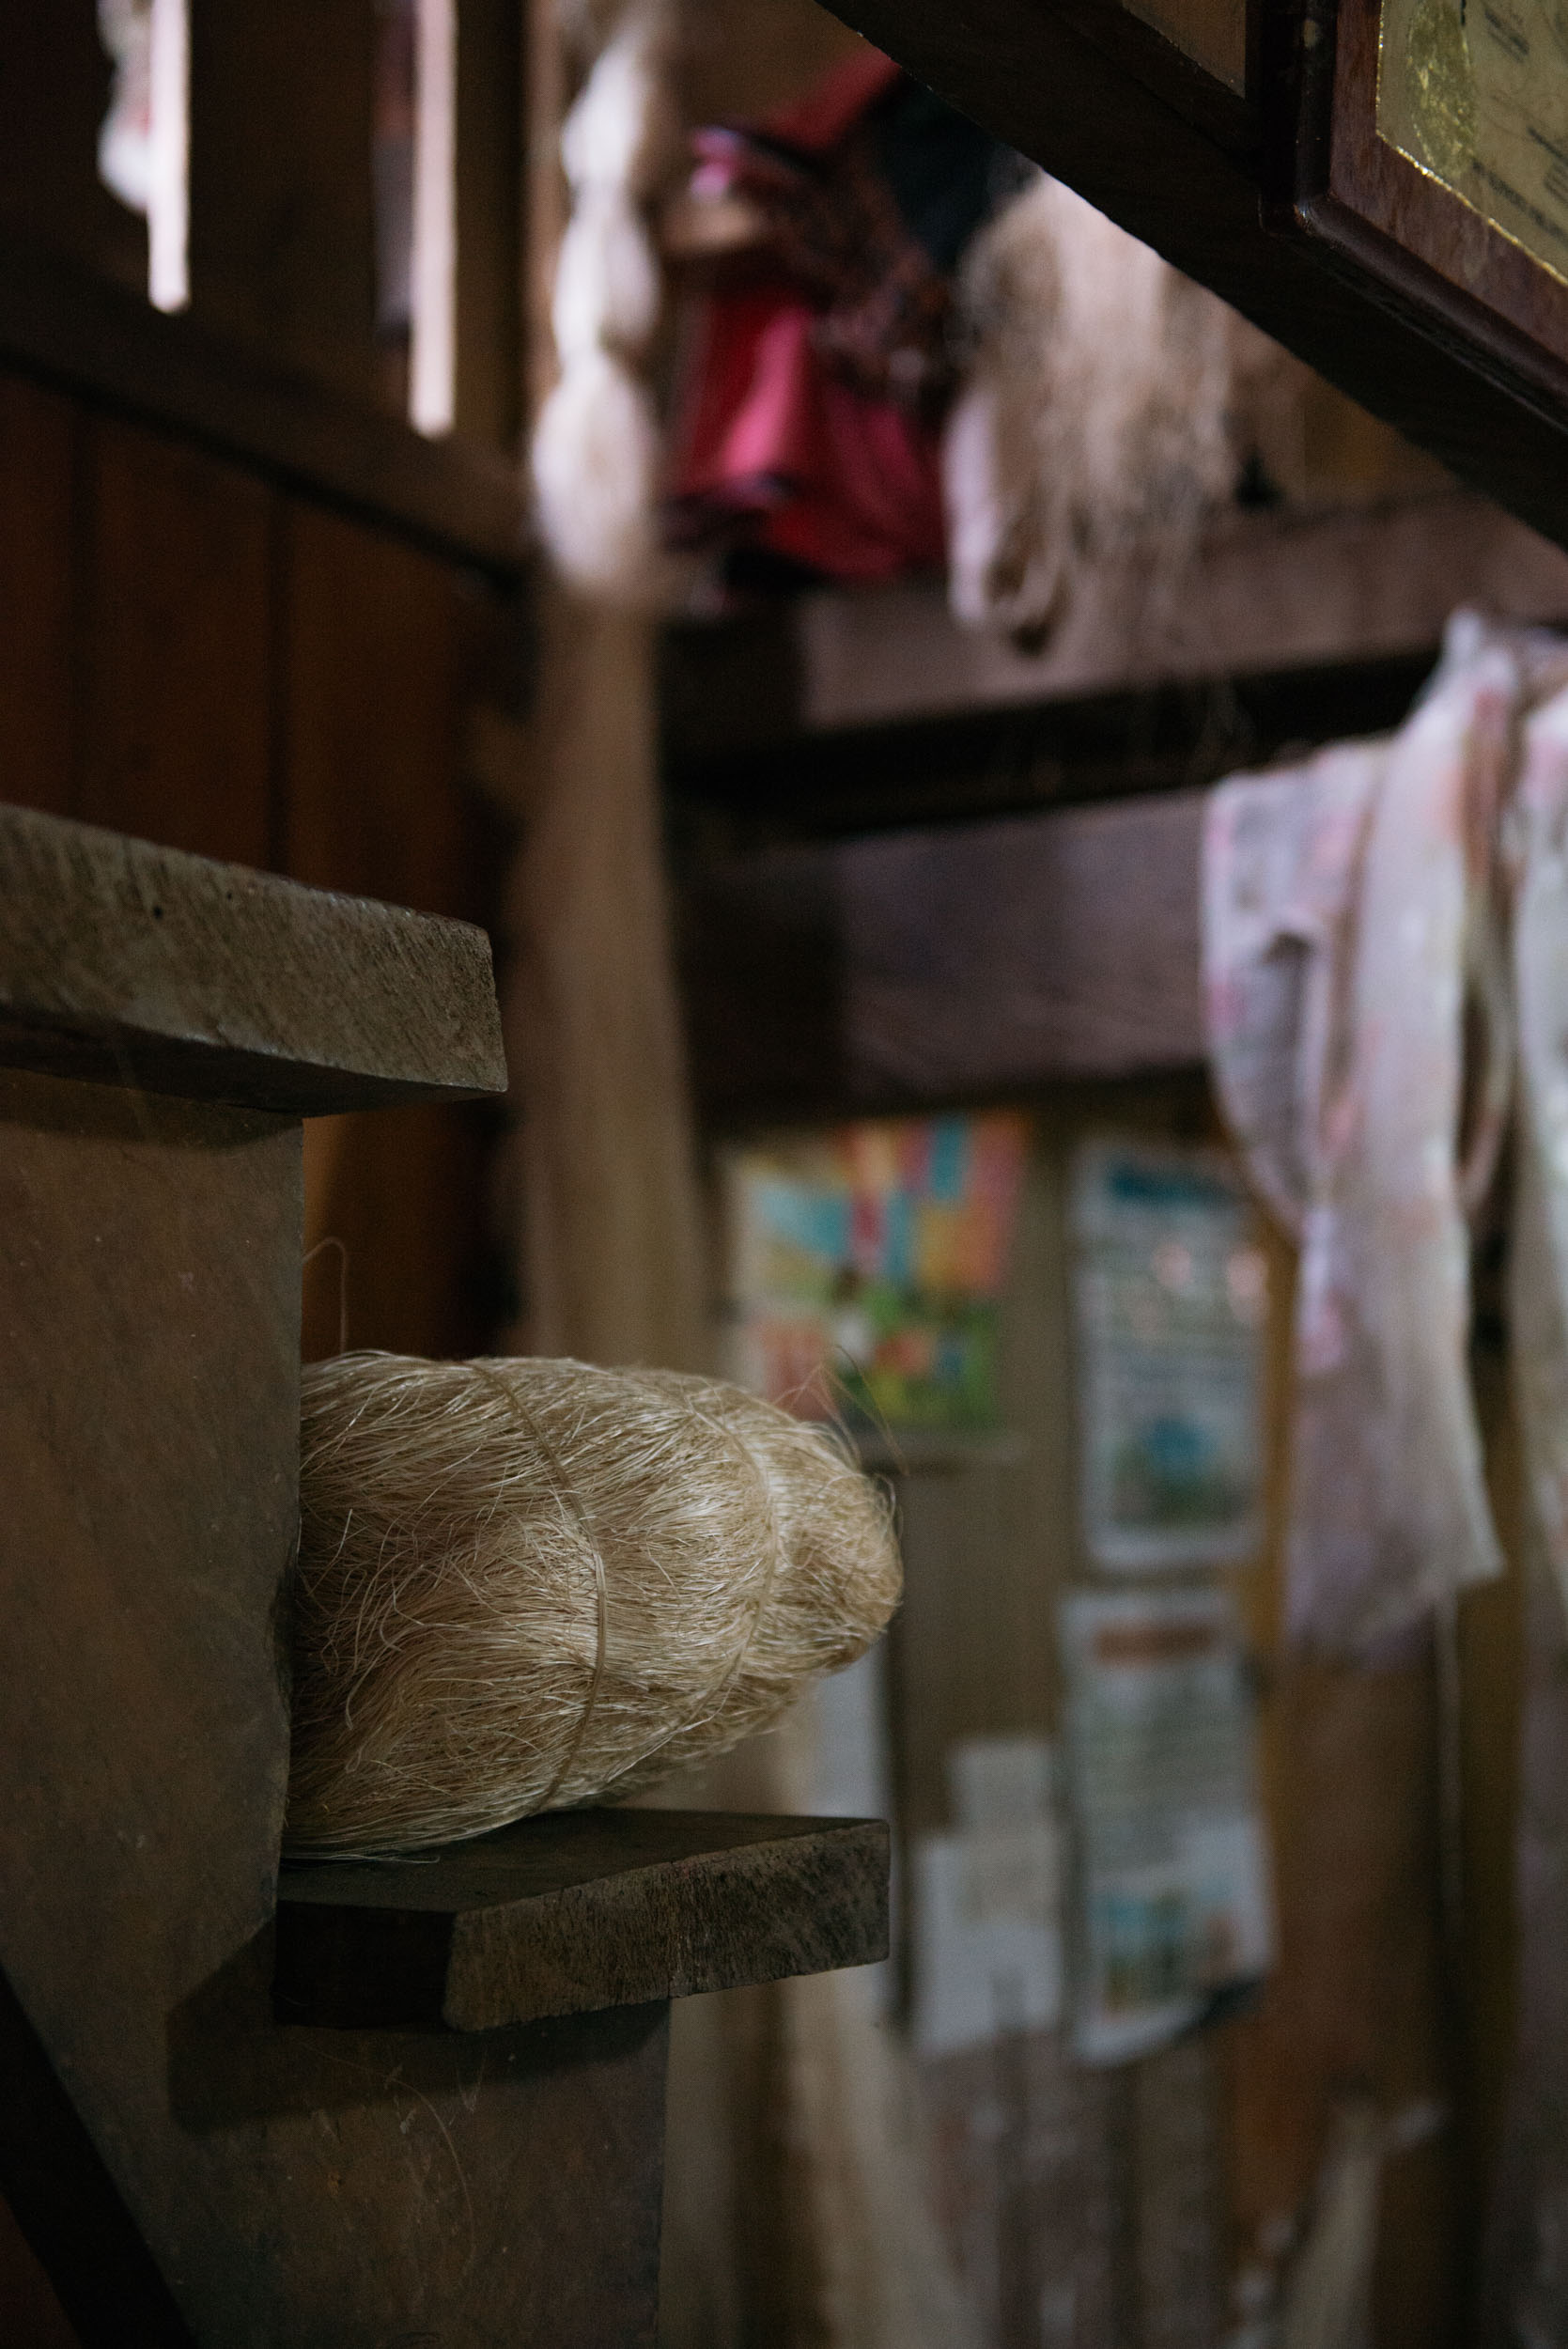 After sun-drying, the fibers are then delivered to the weavers' homes to start the Hinabol making process. The women in every weaving household will start the  lubok  or pounding of fibers in a big wooden mortar and pestle for five consecutive times to make the thread stronger. Pictured above are the fibers bundled together after pounding.